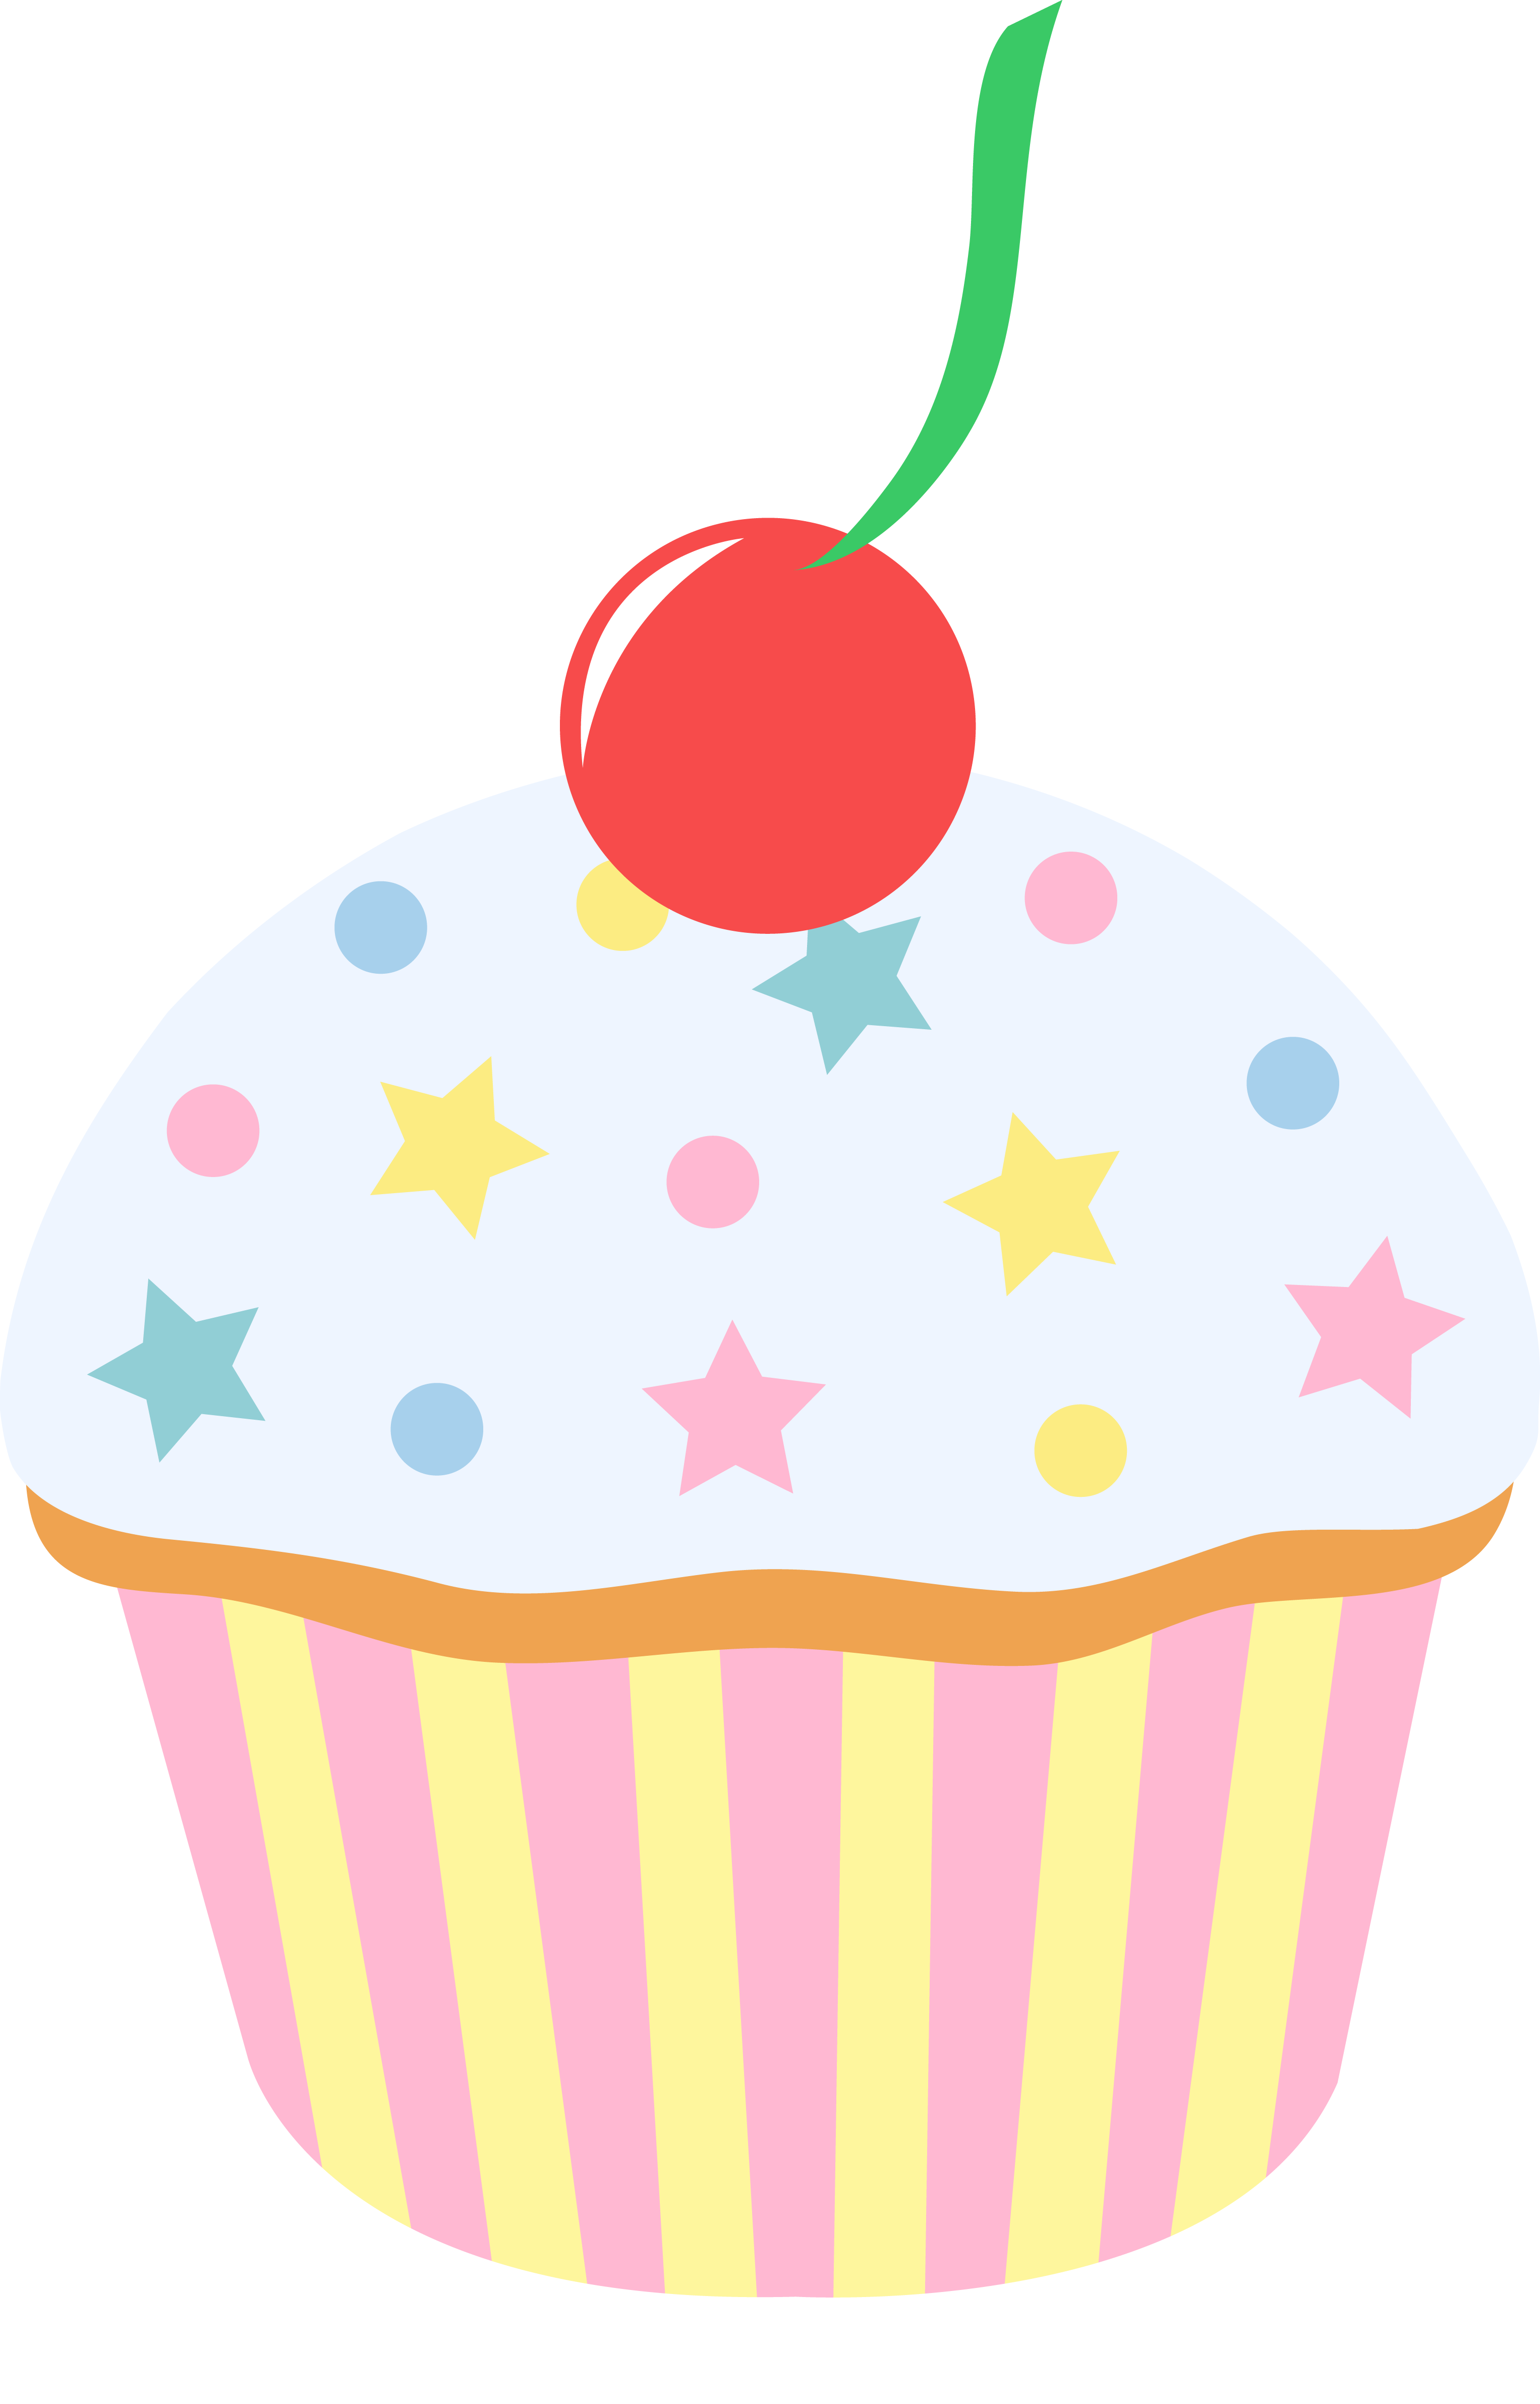 Clipart cupcake vanilla cupcake. White with cute sprinkles